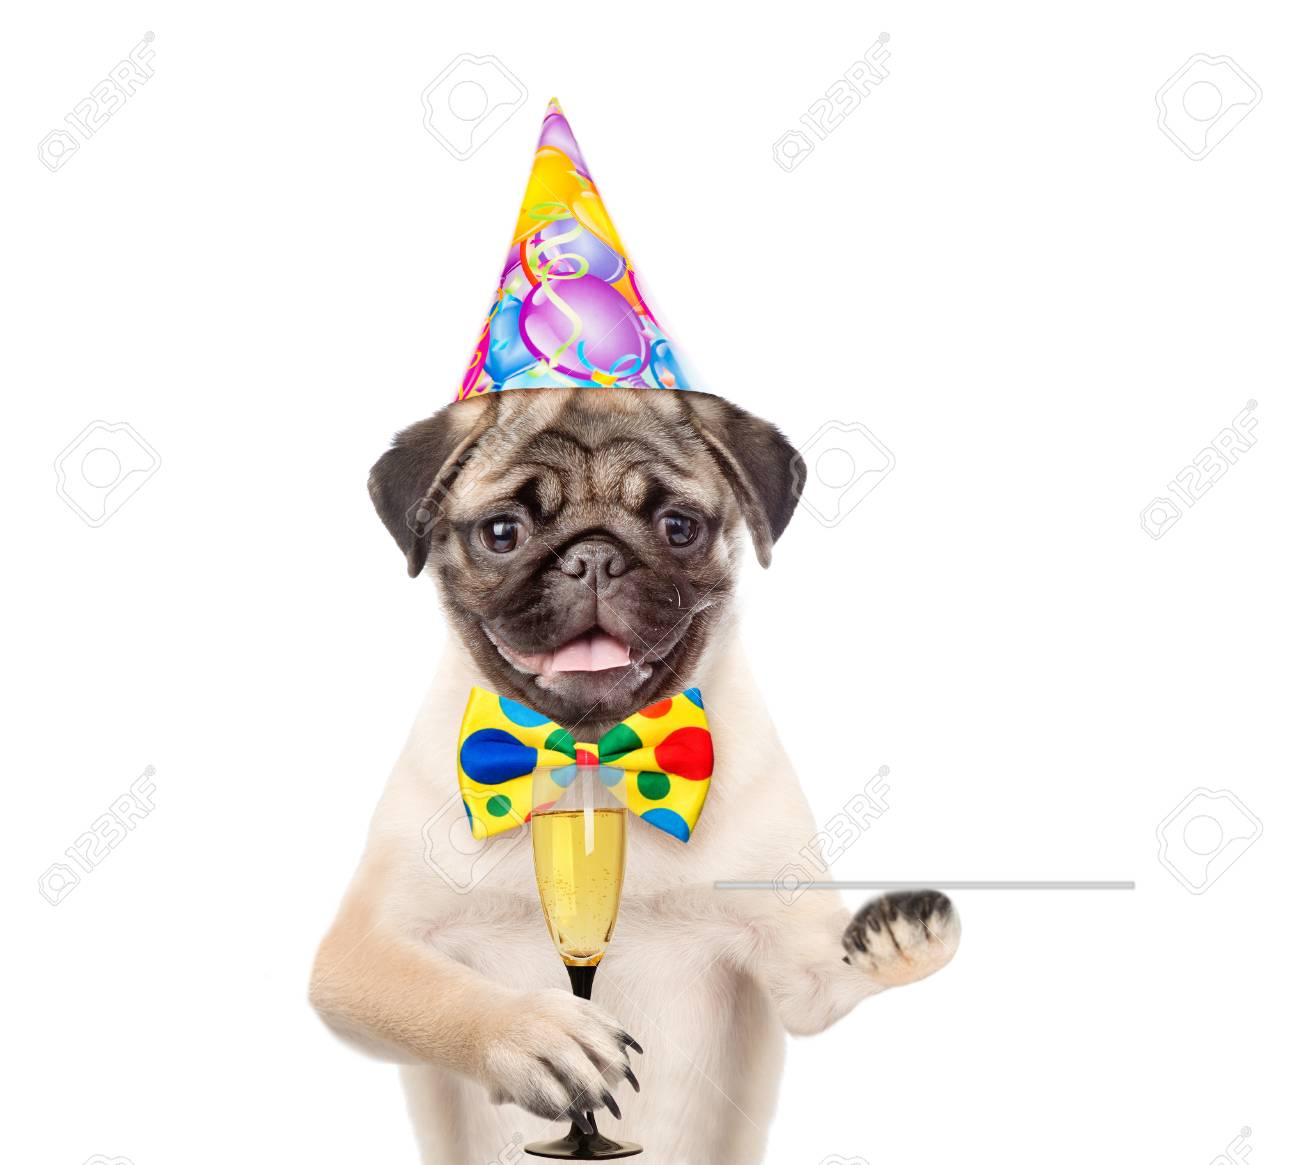 Dog In Birthday Hat Holding Glass Of Champagne And Service Tray Isolated On White Background